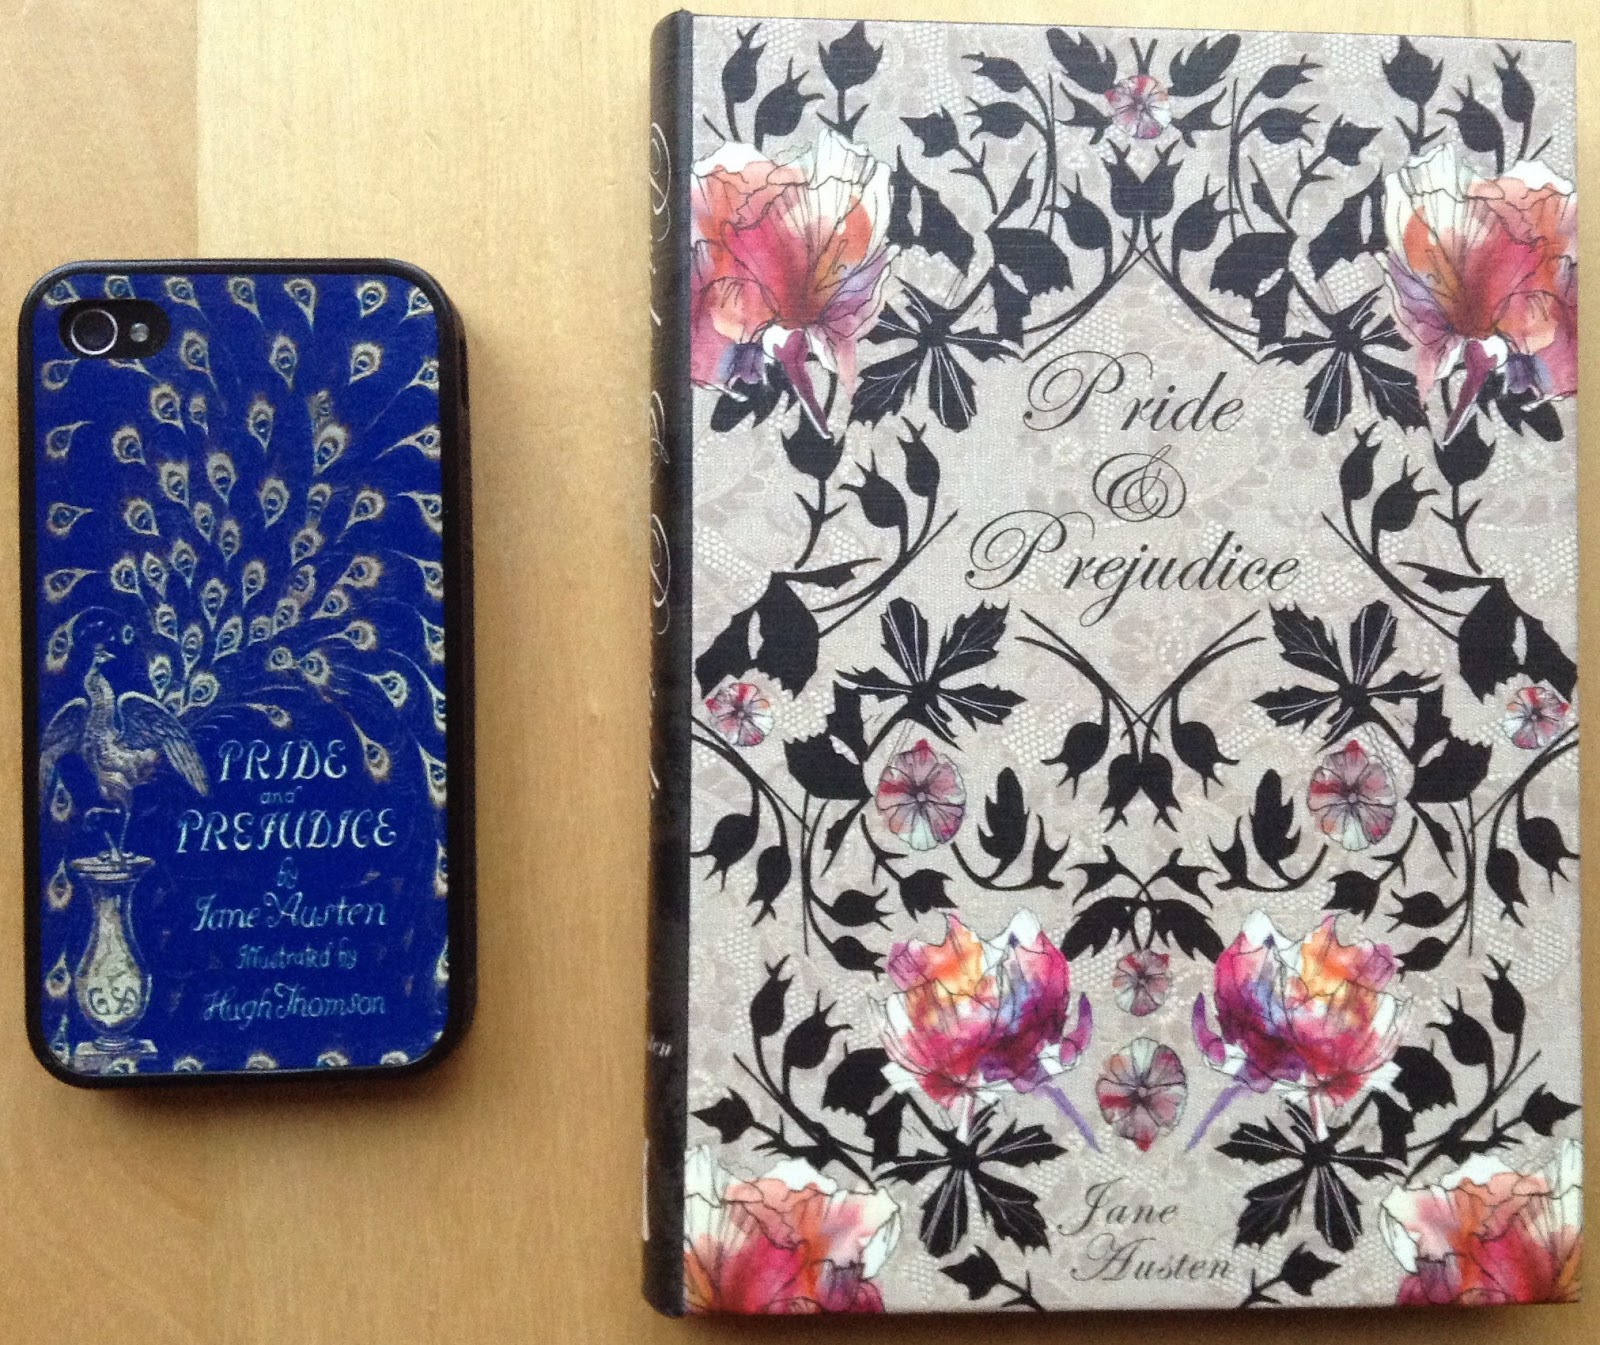 Pride & Prejudice phone cover and Pride & Prejudice Kindle cover